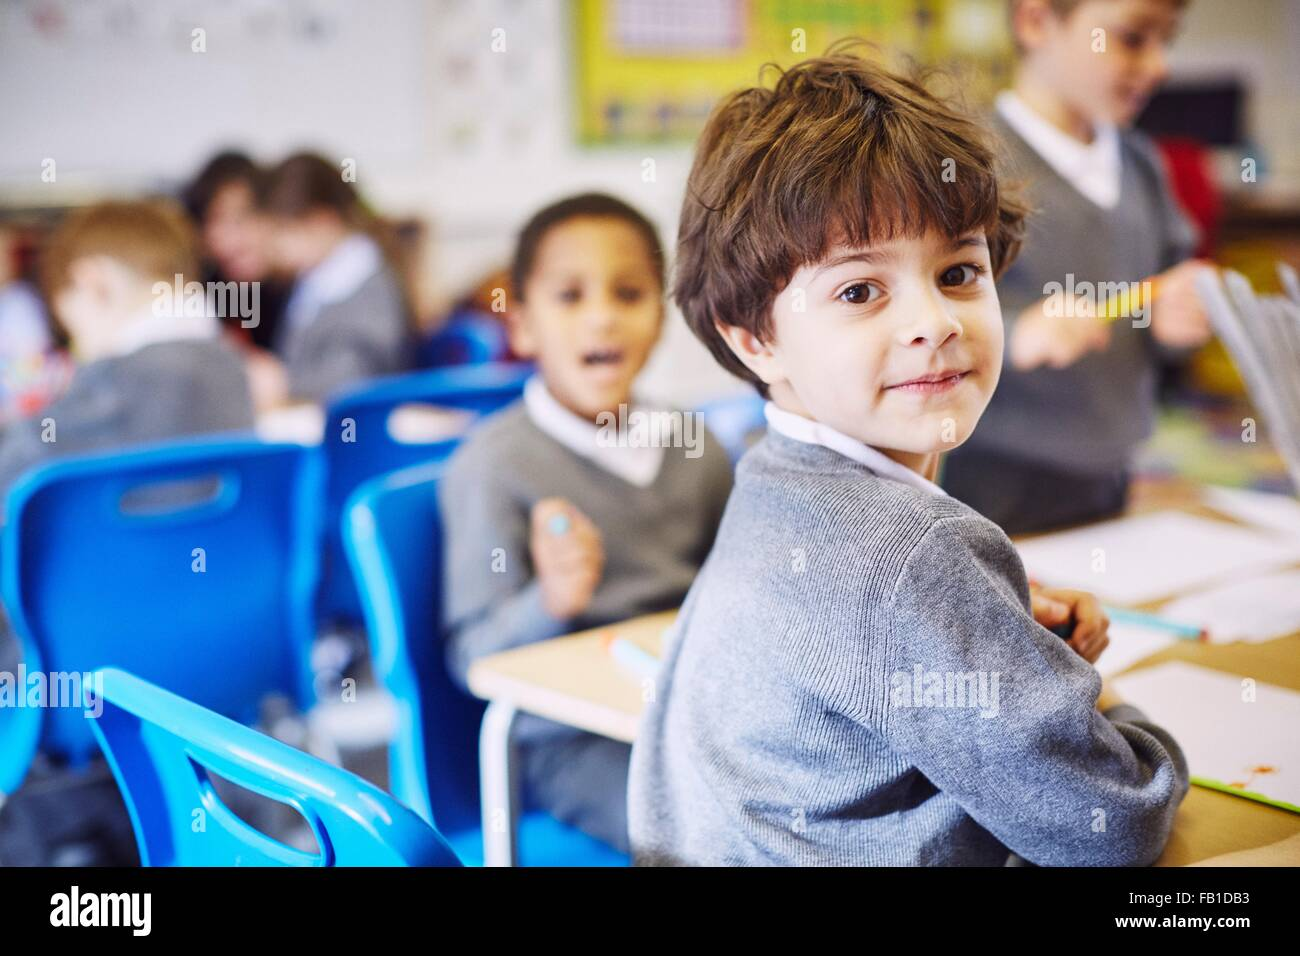 Portrait of boy looking over his shoulder in elementary school classroom - Stock Image